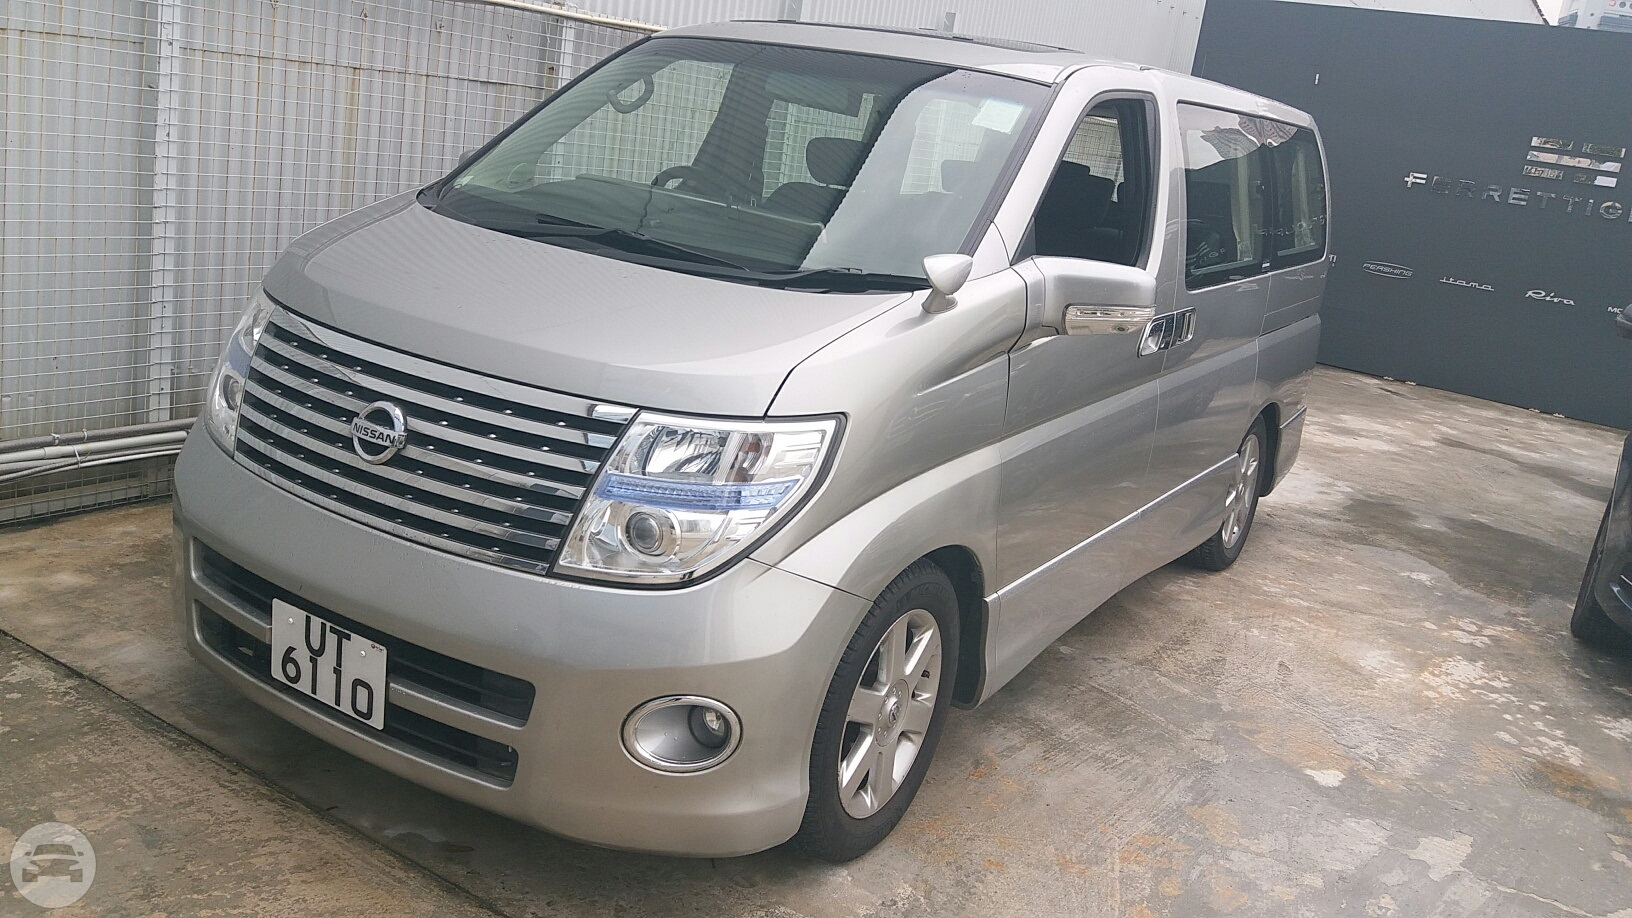 Nissan ElGrande - / Hong Kong,    / Hourly HKD 450.00  / Airport Transfer HKD 600.00